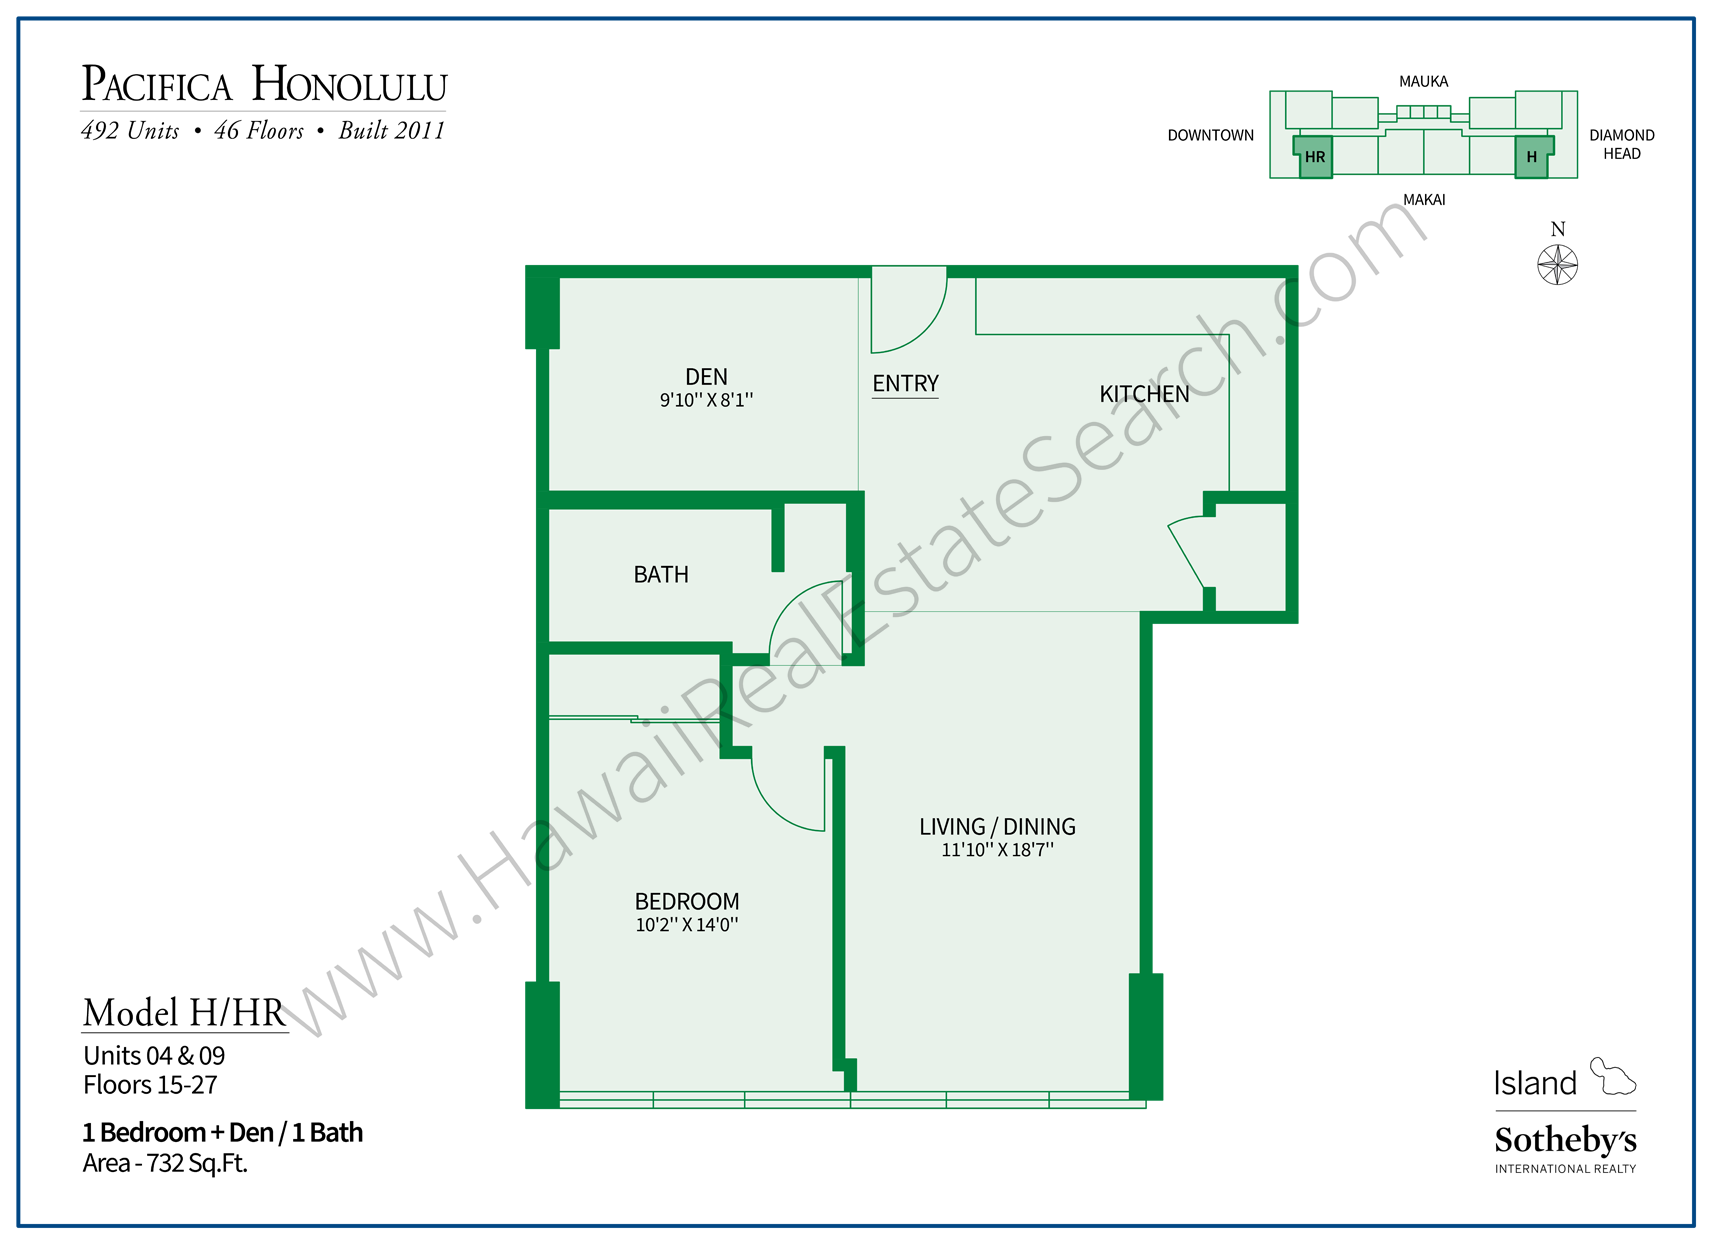 Pacifica Honolulu Floor Plan H